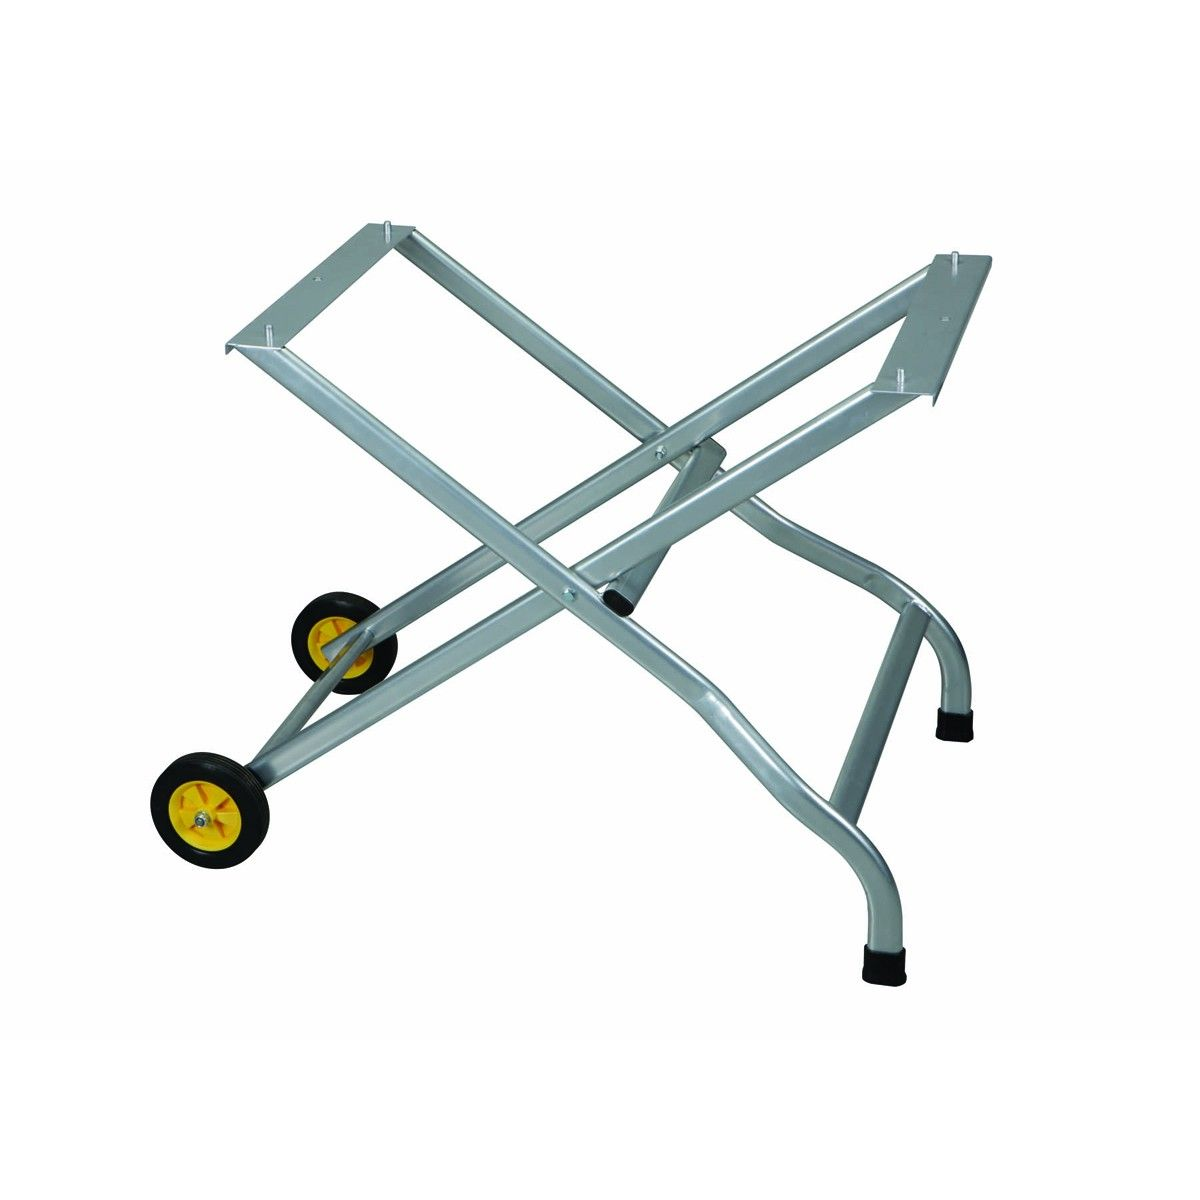 Folding Tile Saw Stand With Wheels In 2020 Saw Stand Tile Saw Table Saw Stand